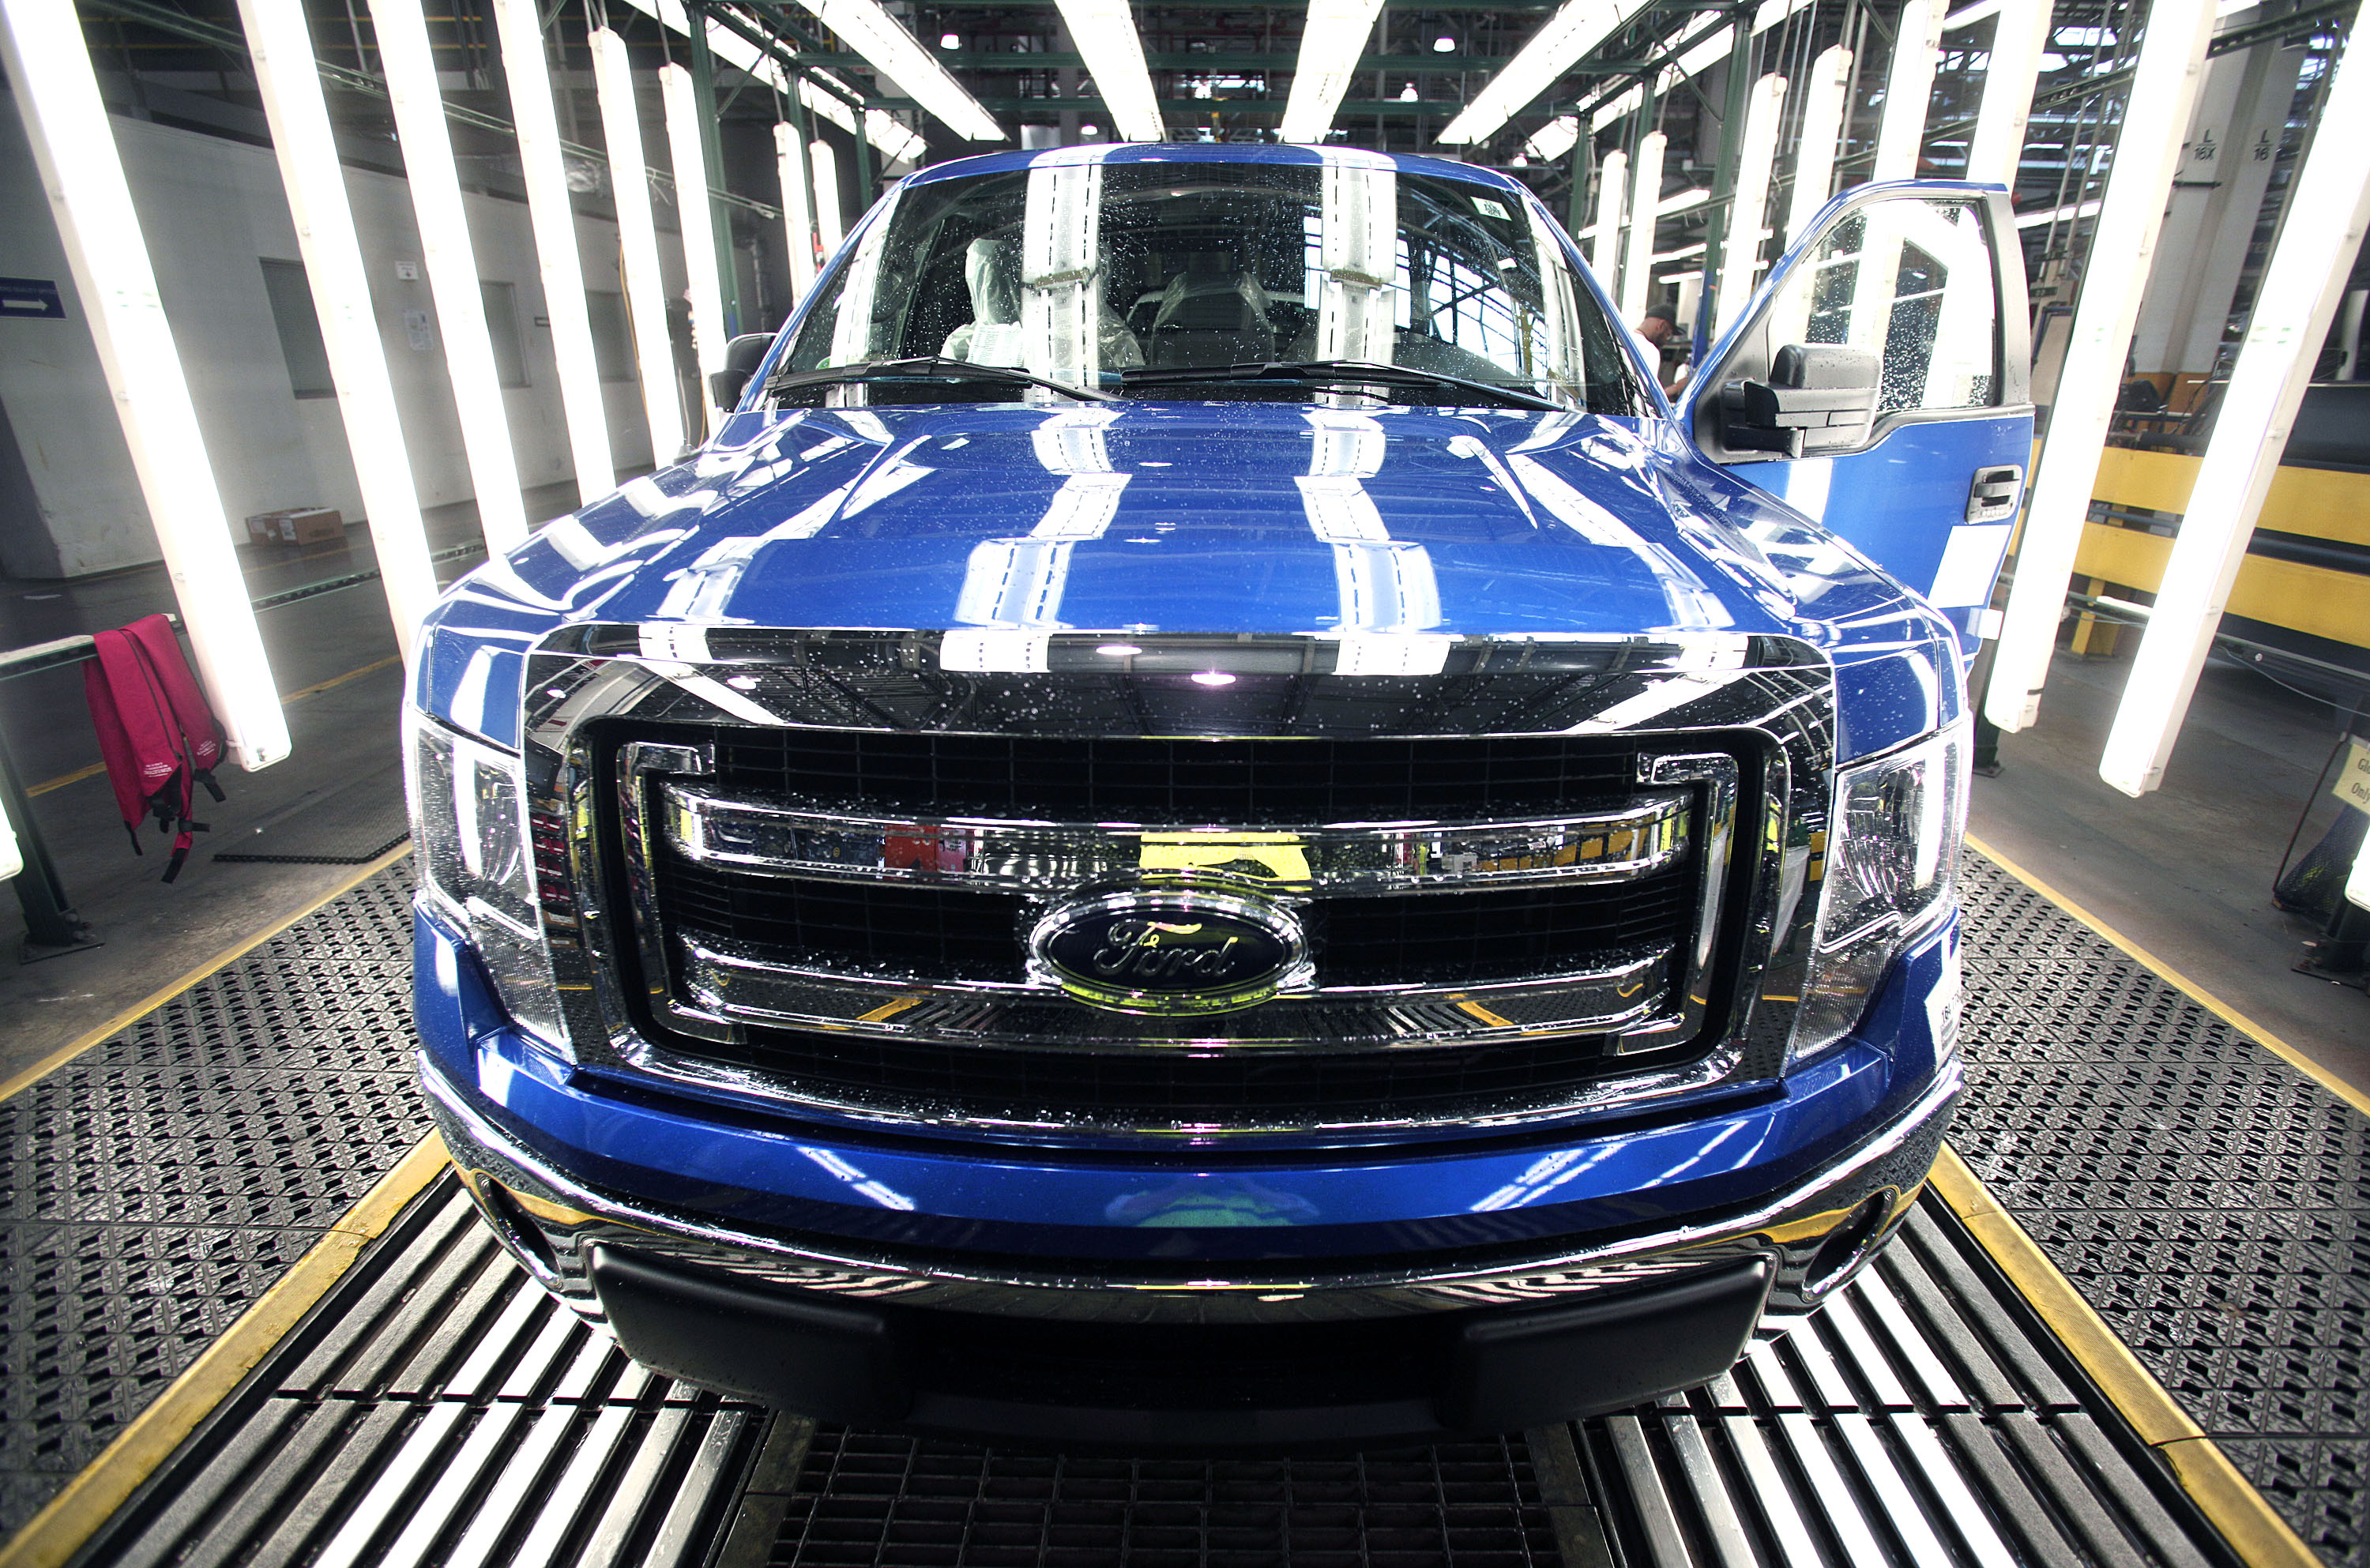 A new 2014 Ford F-150 truck exits a quality control inspection after undergoing  assembly at the Ford Dearborn Truck Plant on June 13, 2014 in Dearborn, Mich.